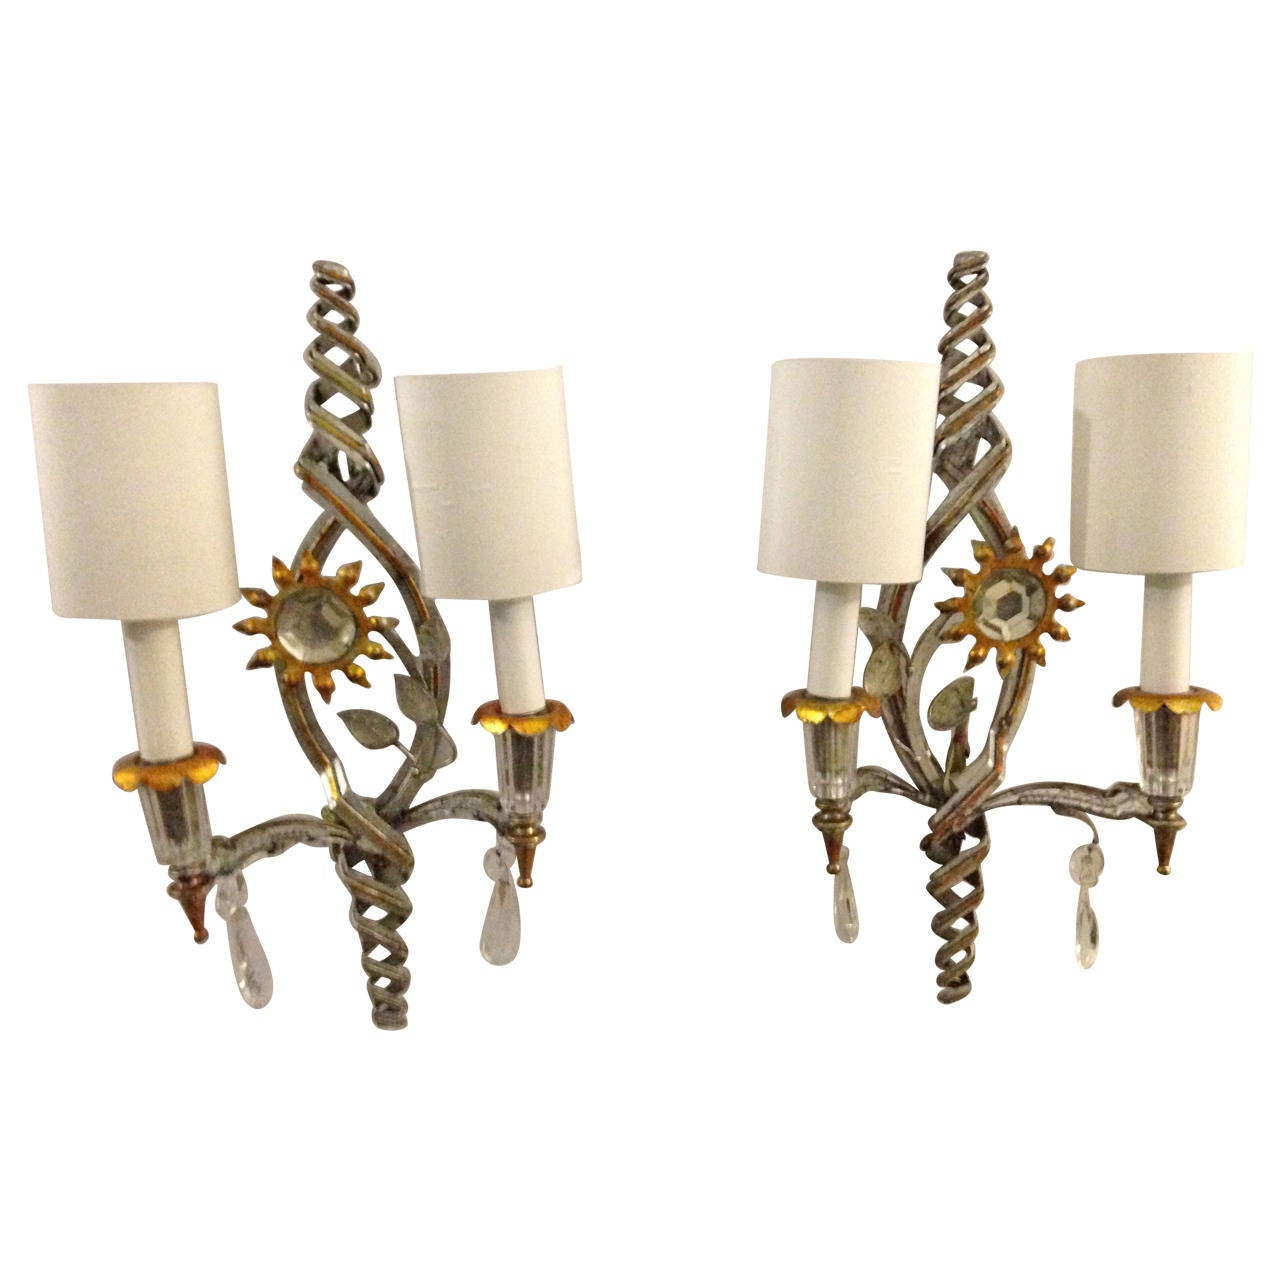 Small White Wall Lights : Very Rare Pair of Bicolor Authentic Maison Bagues Wall Lamps at 1stdibs